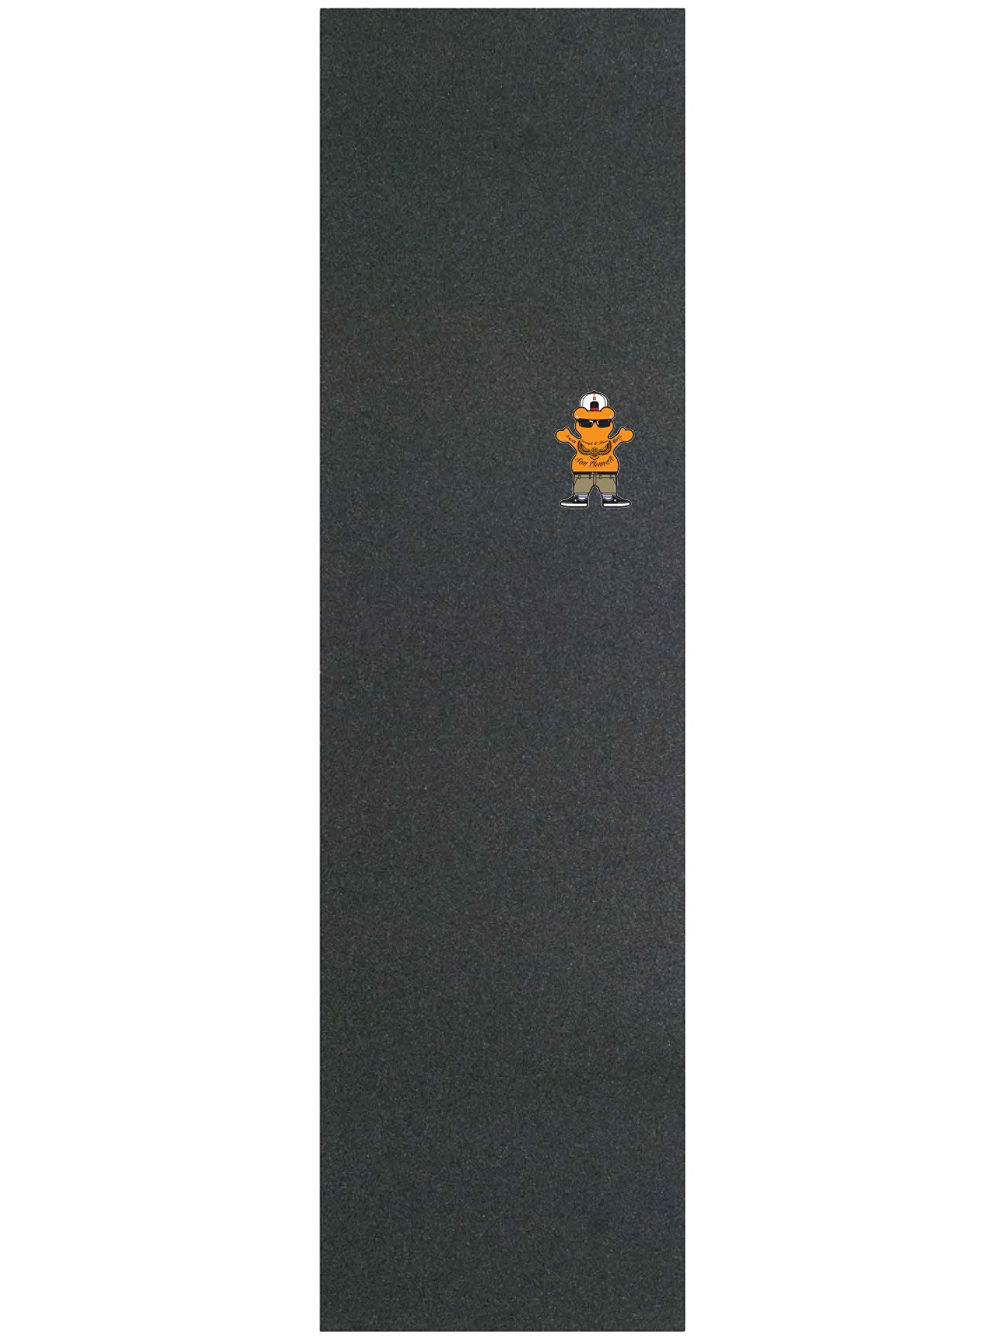 Sheckler Socal Grip Tape